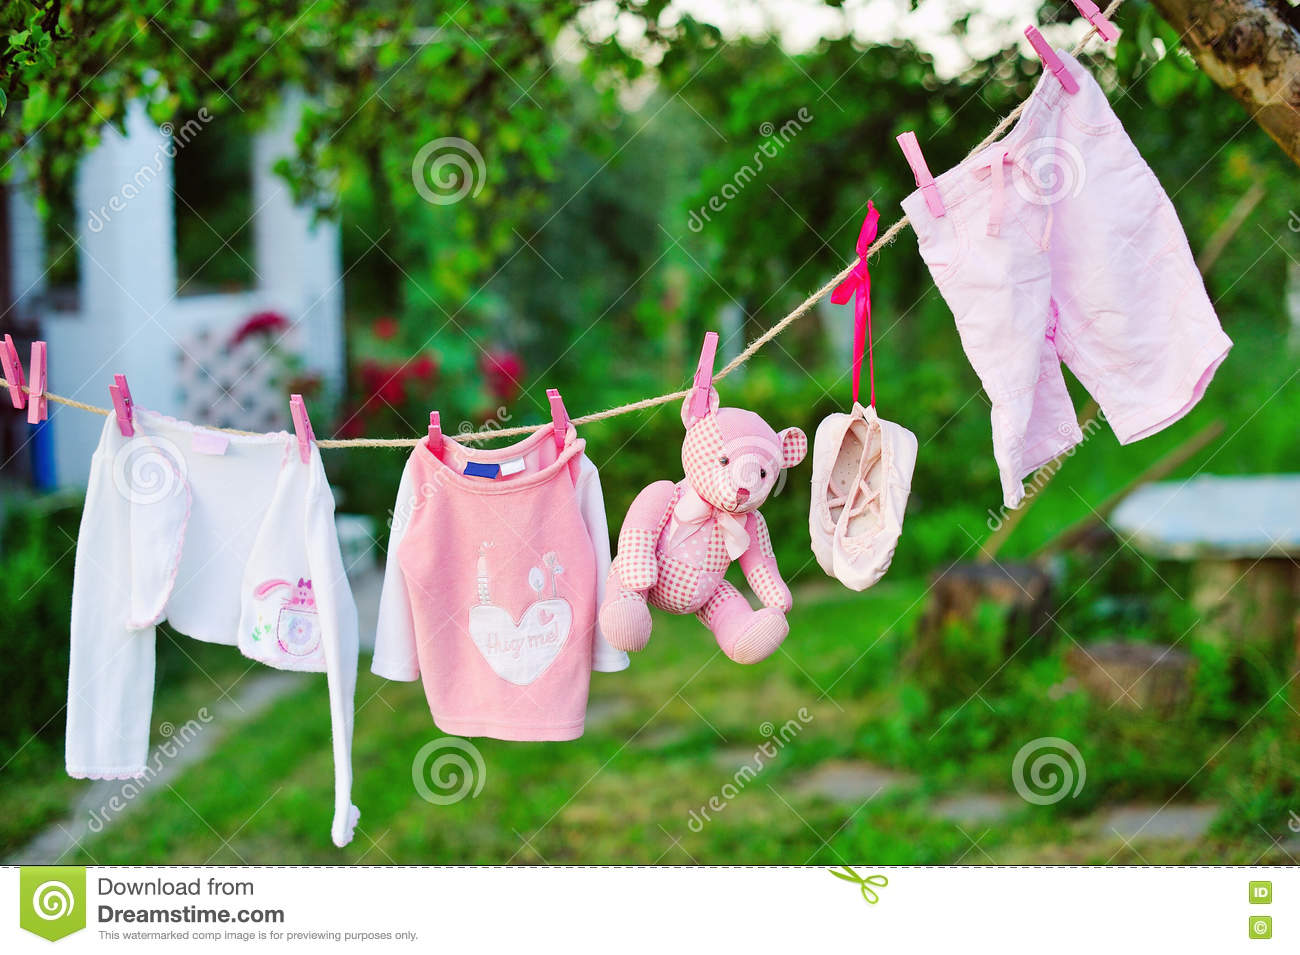 Clothes Drying Outdoors Vector Illustration